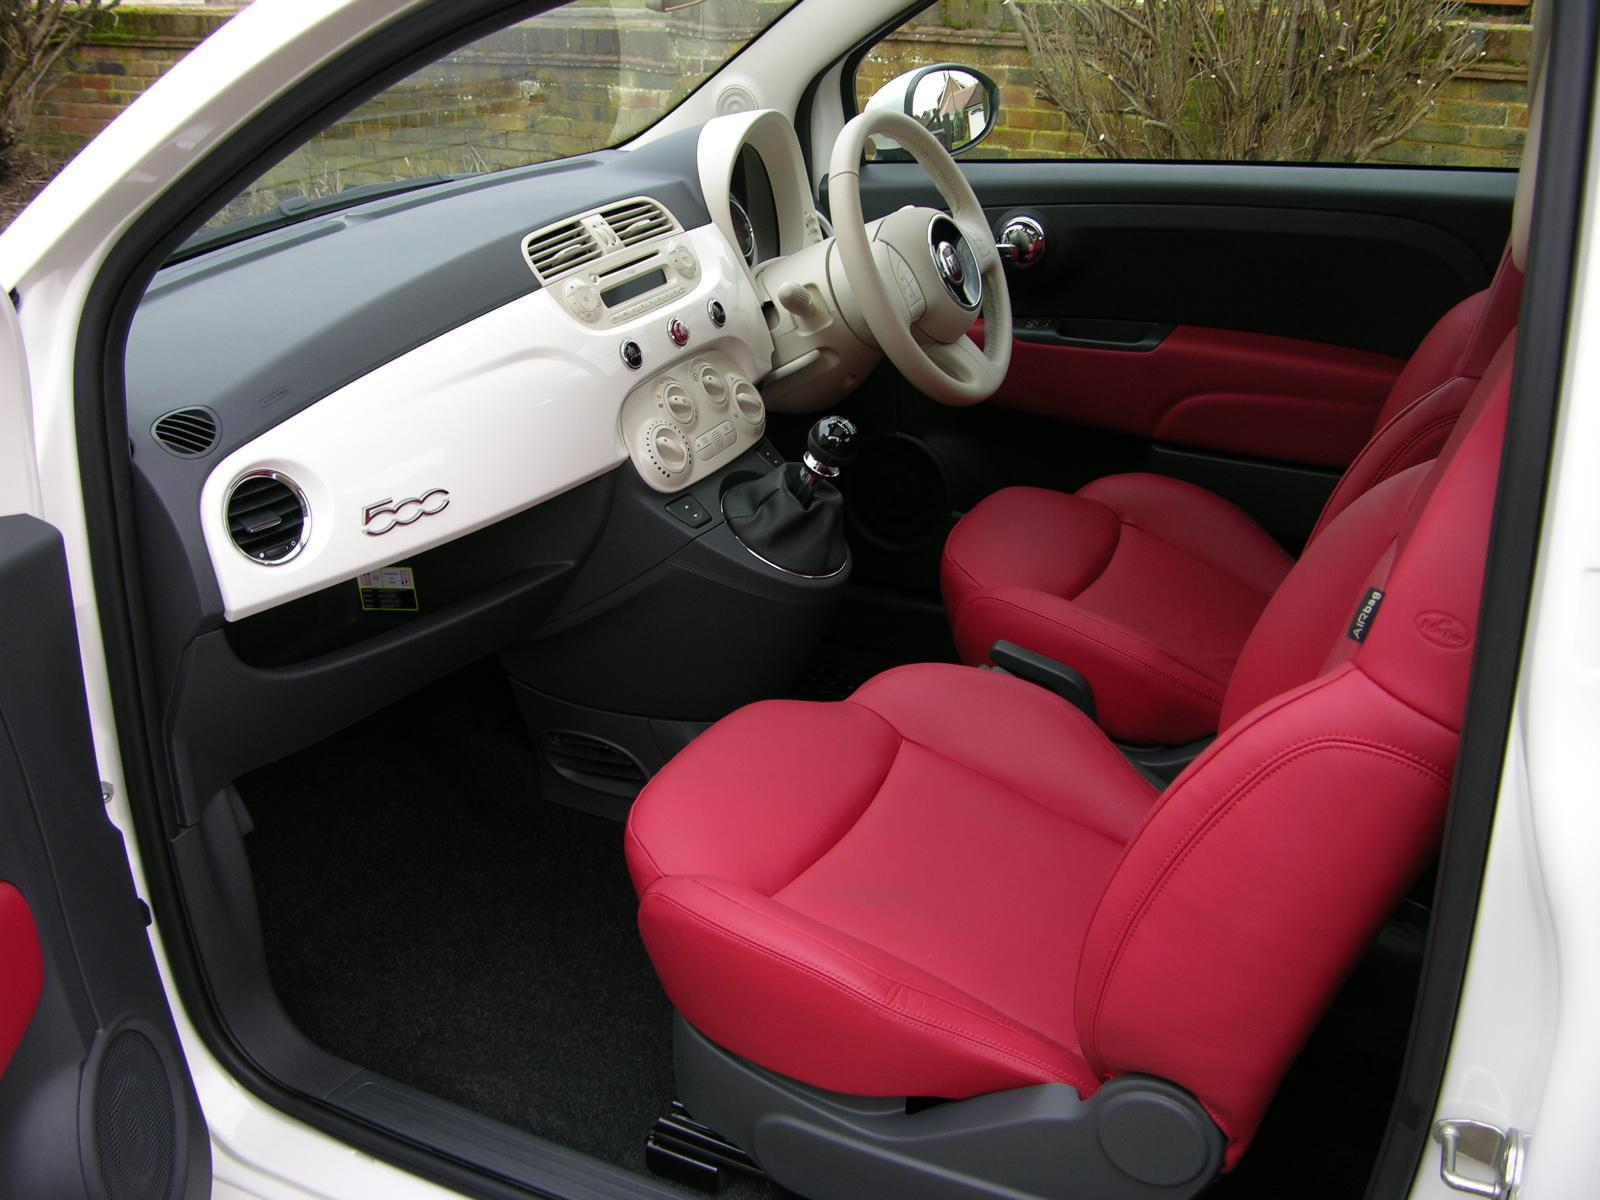 file 2008 fiat 500 1 4 lounge flickr the car spy 6 jpg wikimedia commons. Black Bedroom Furniture Sets. Home Design Ideas